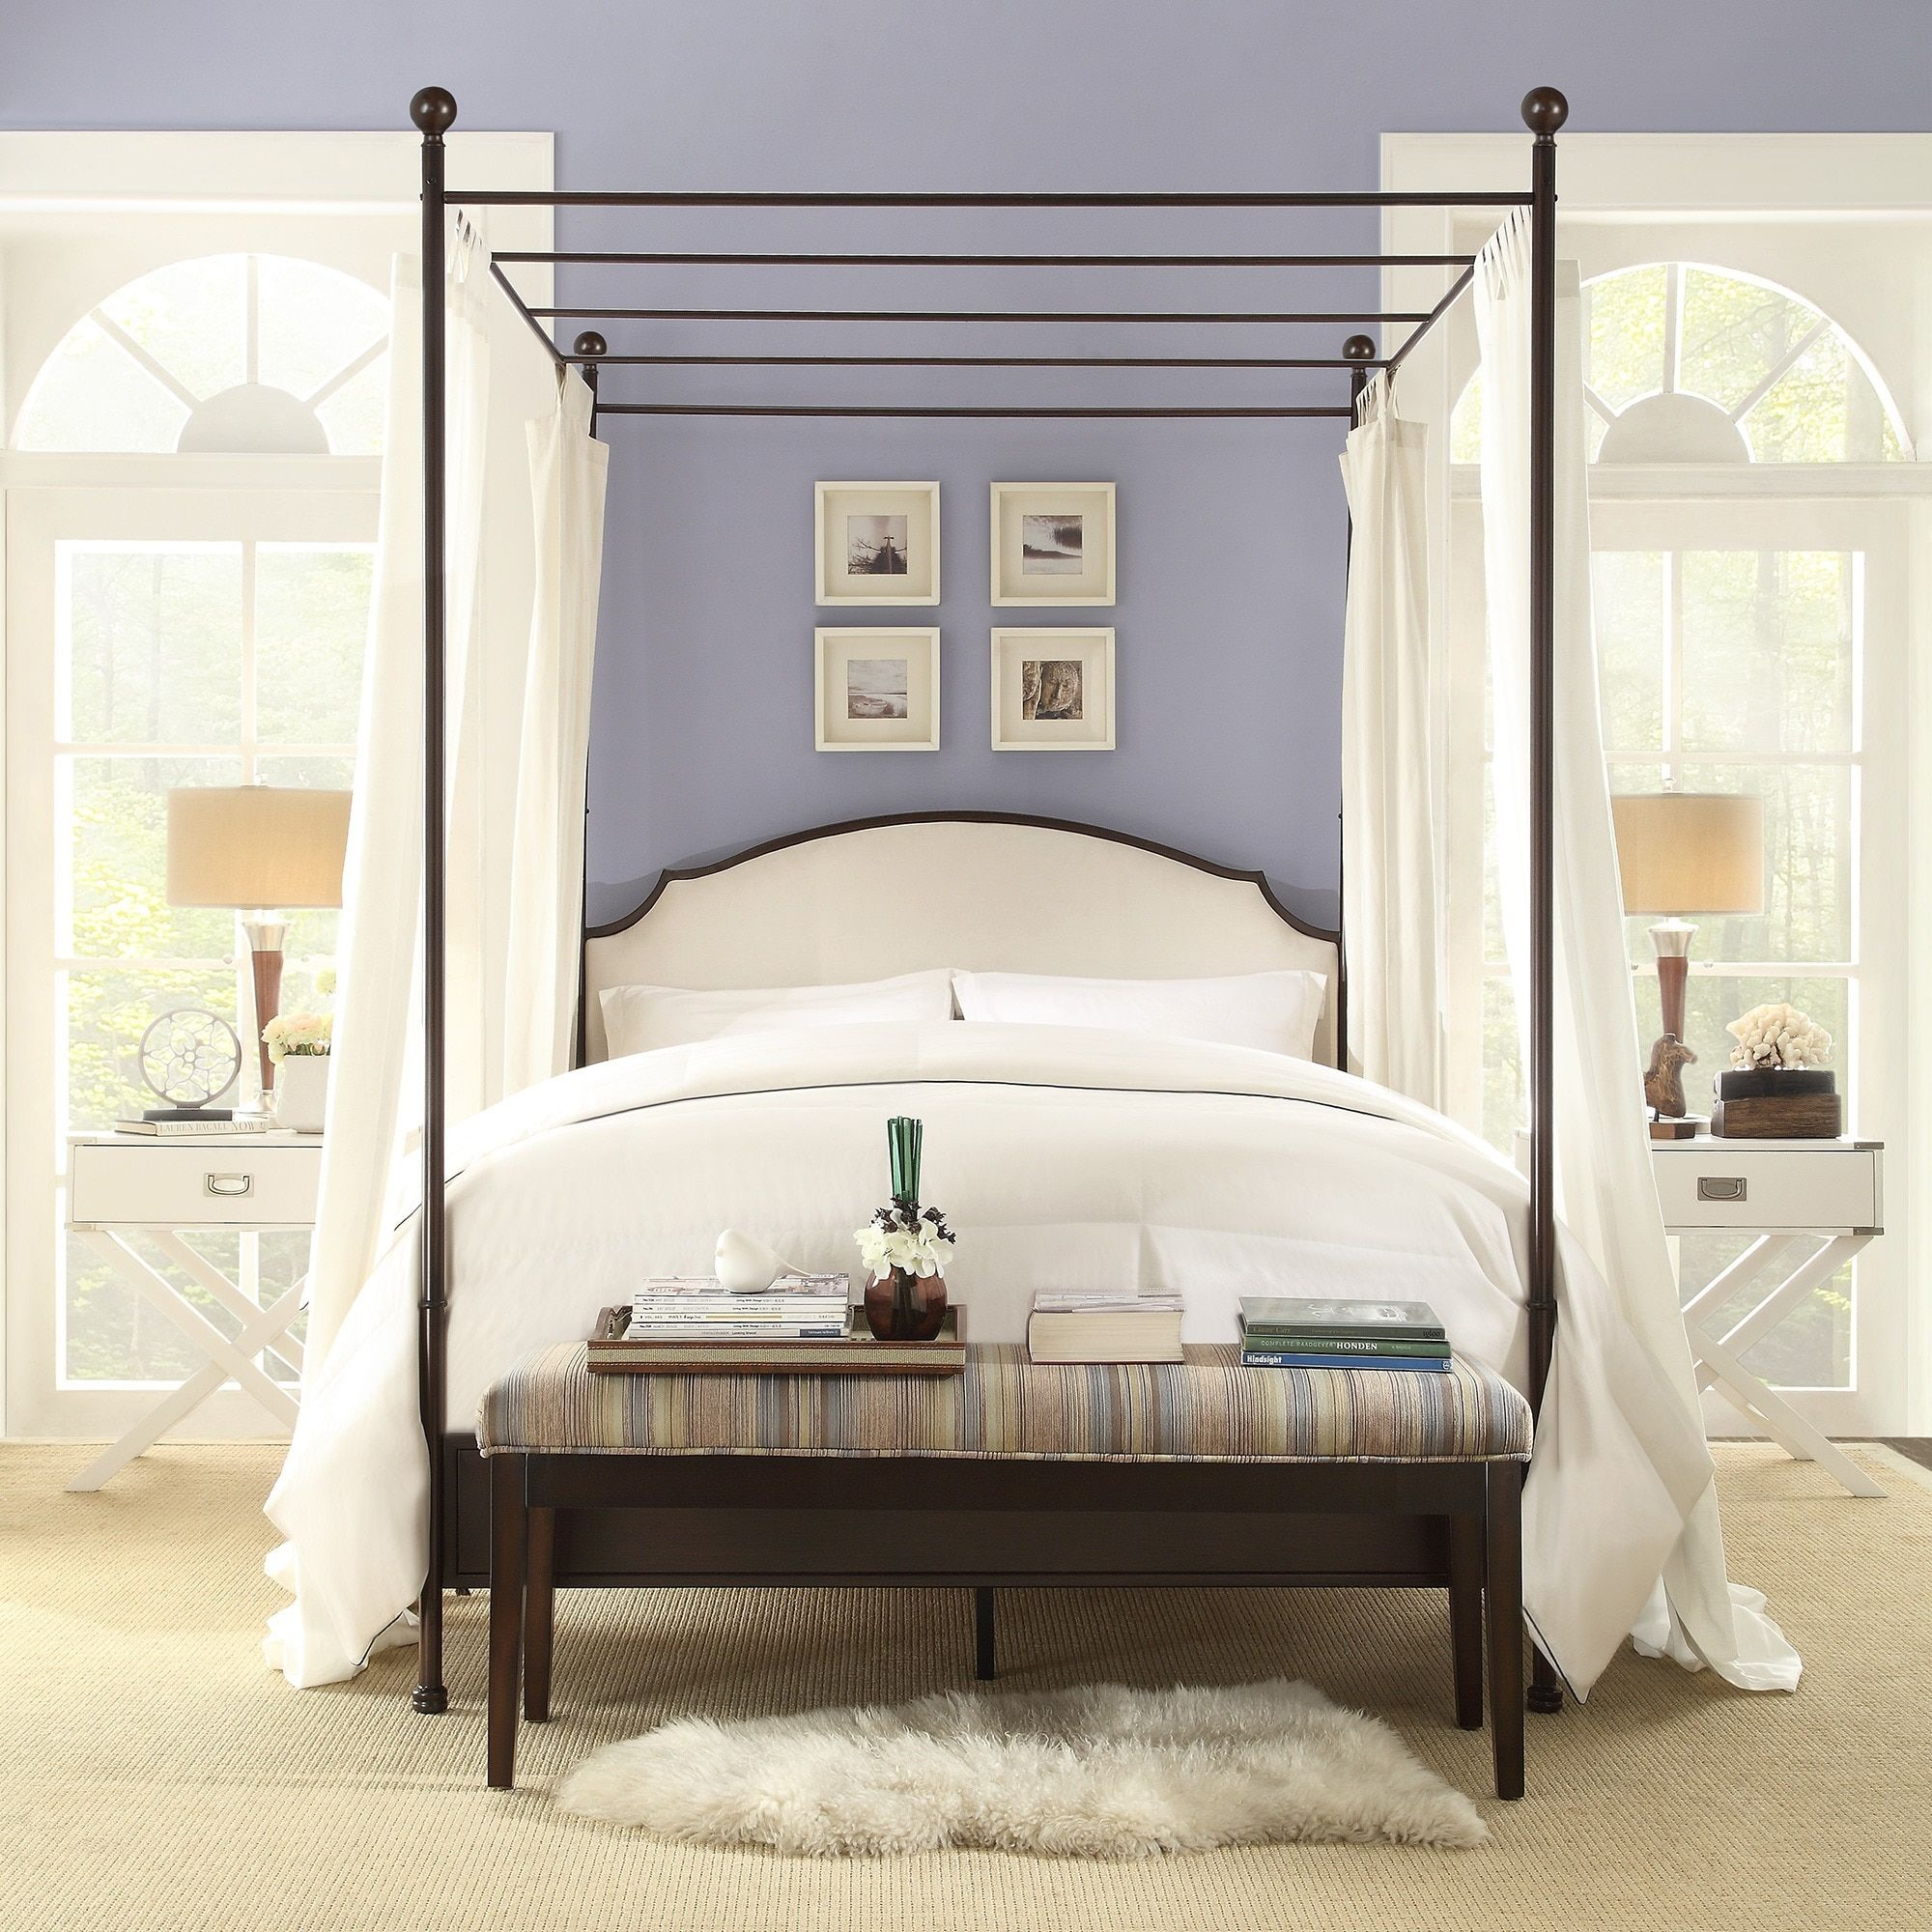 Andover Cream White Curved Top Cherry Brown Metal Canopy Poster Bed by  INSPIRE Q - Free